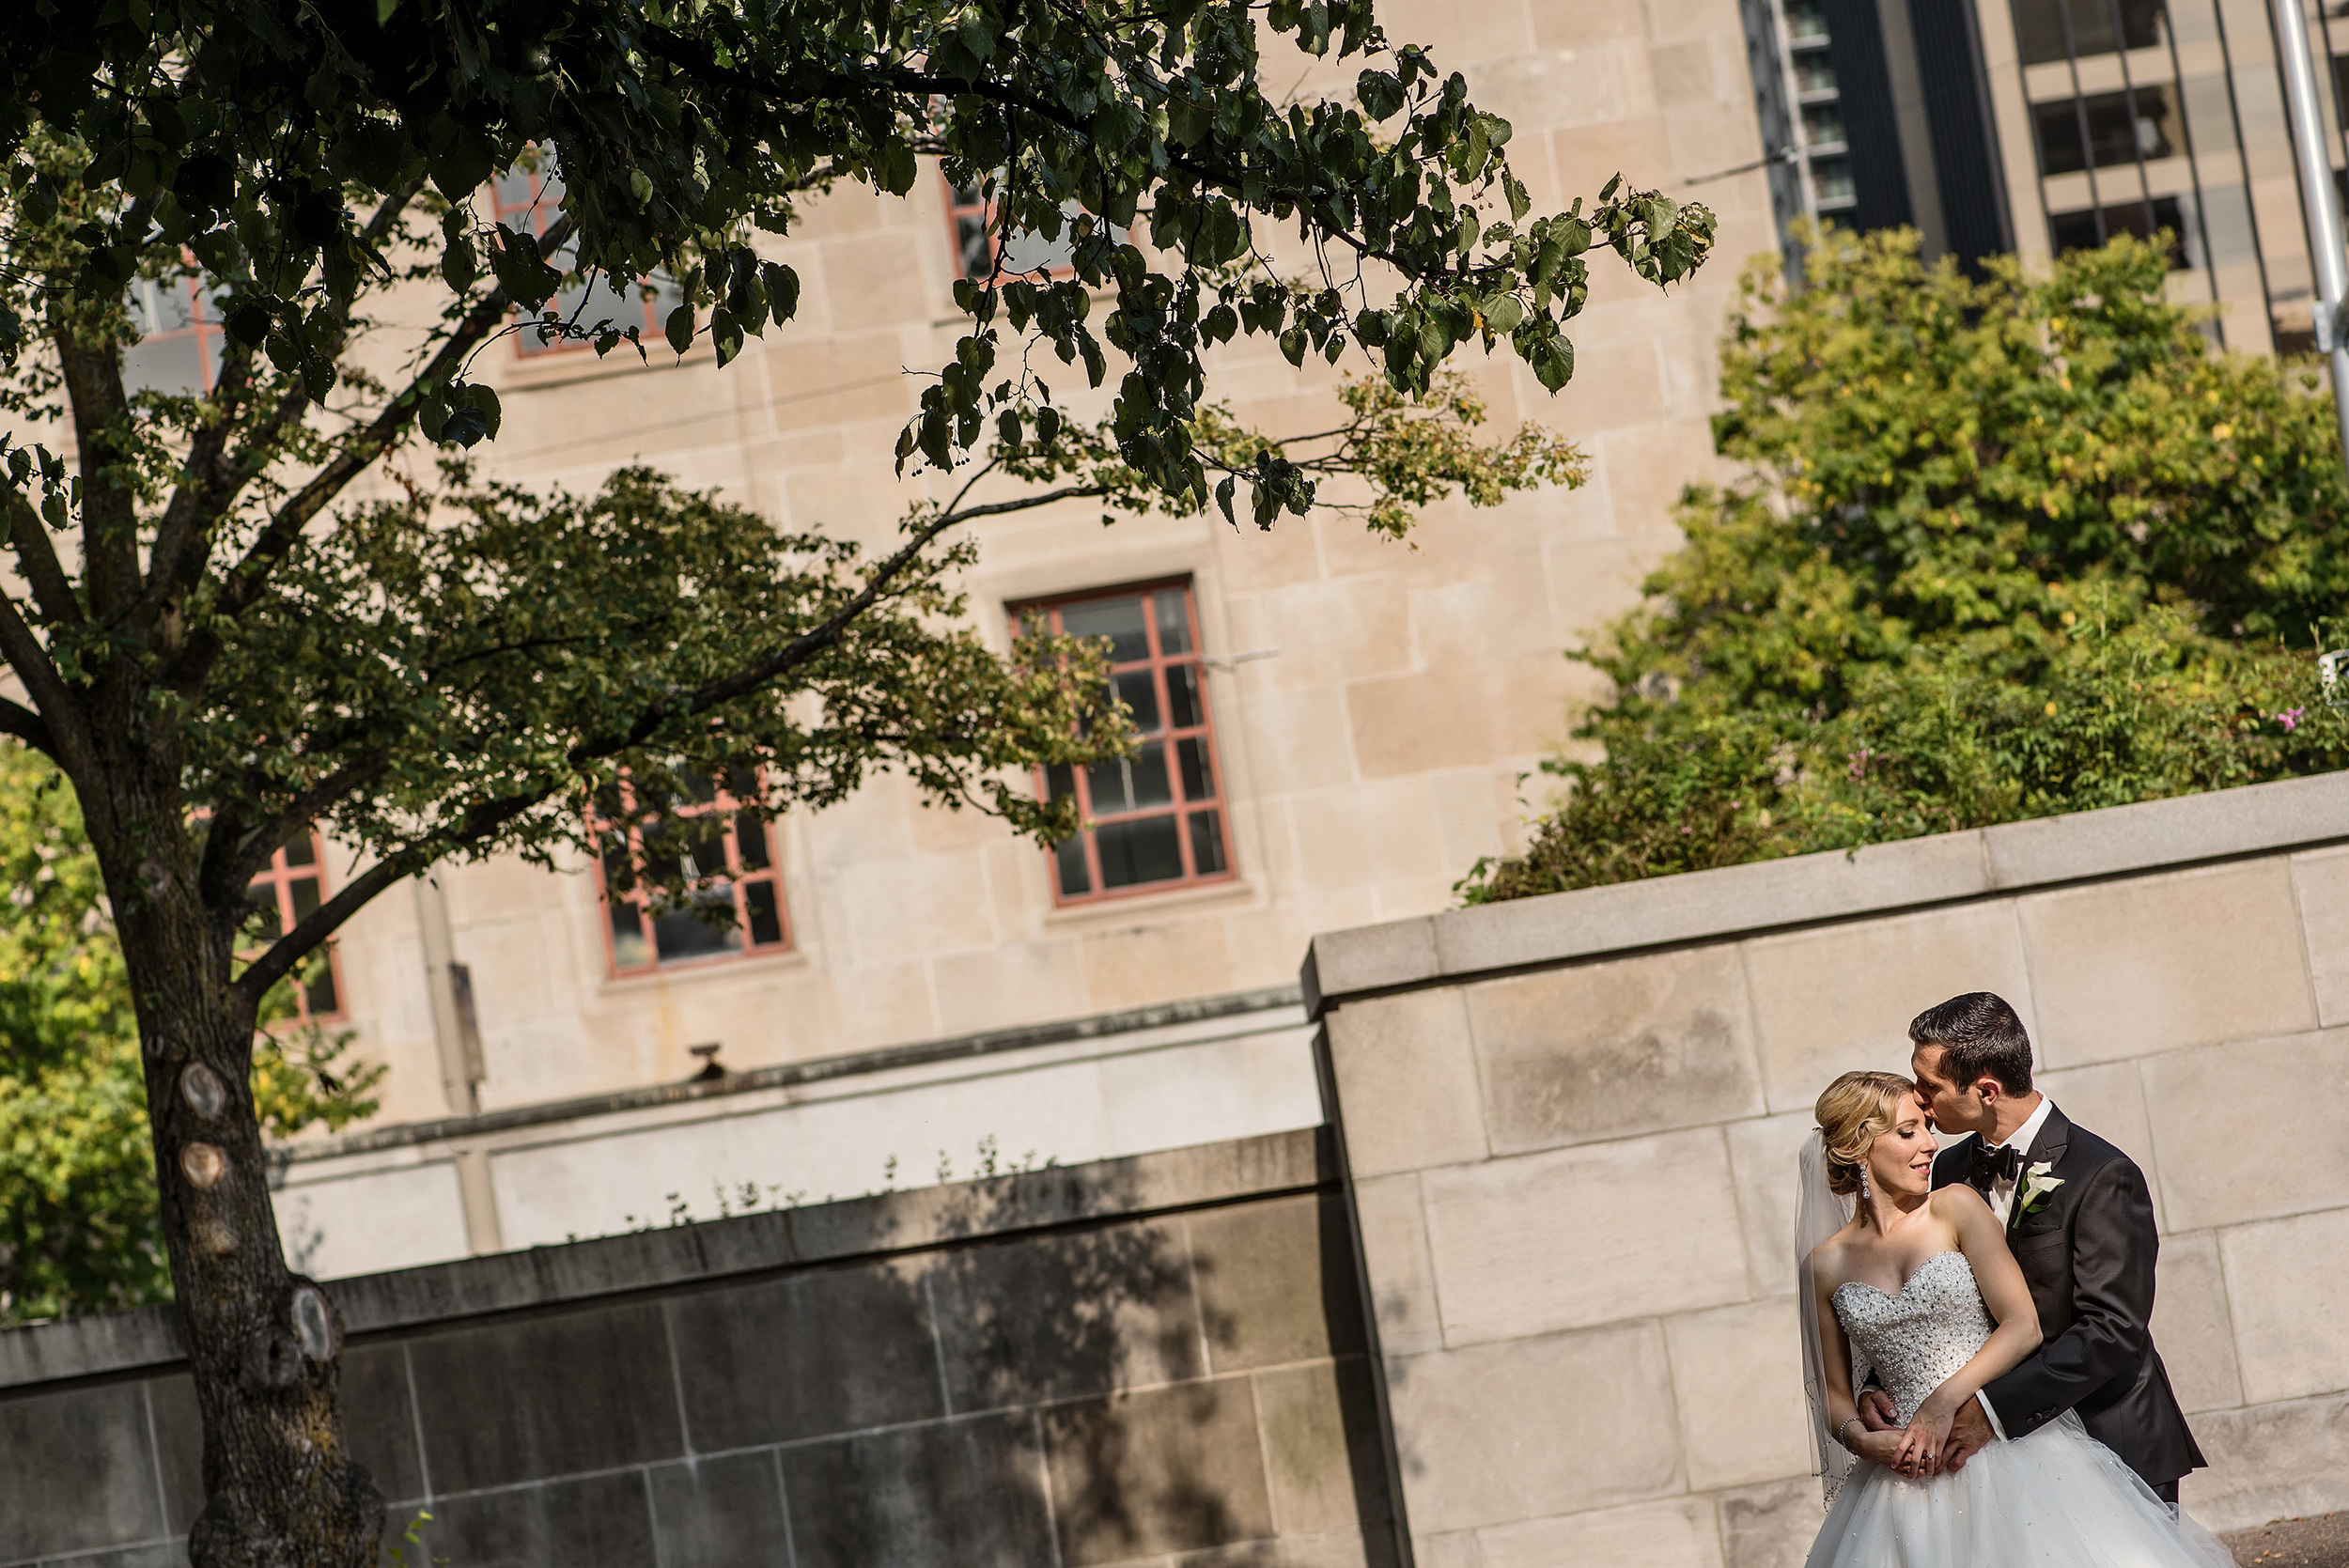 Outdoor nature wedding photograph in downtown Ottawa